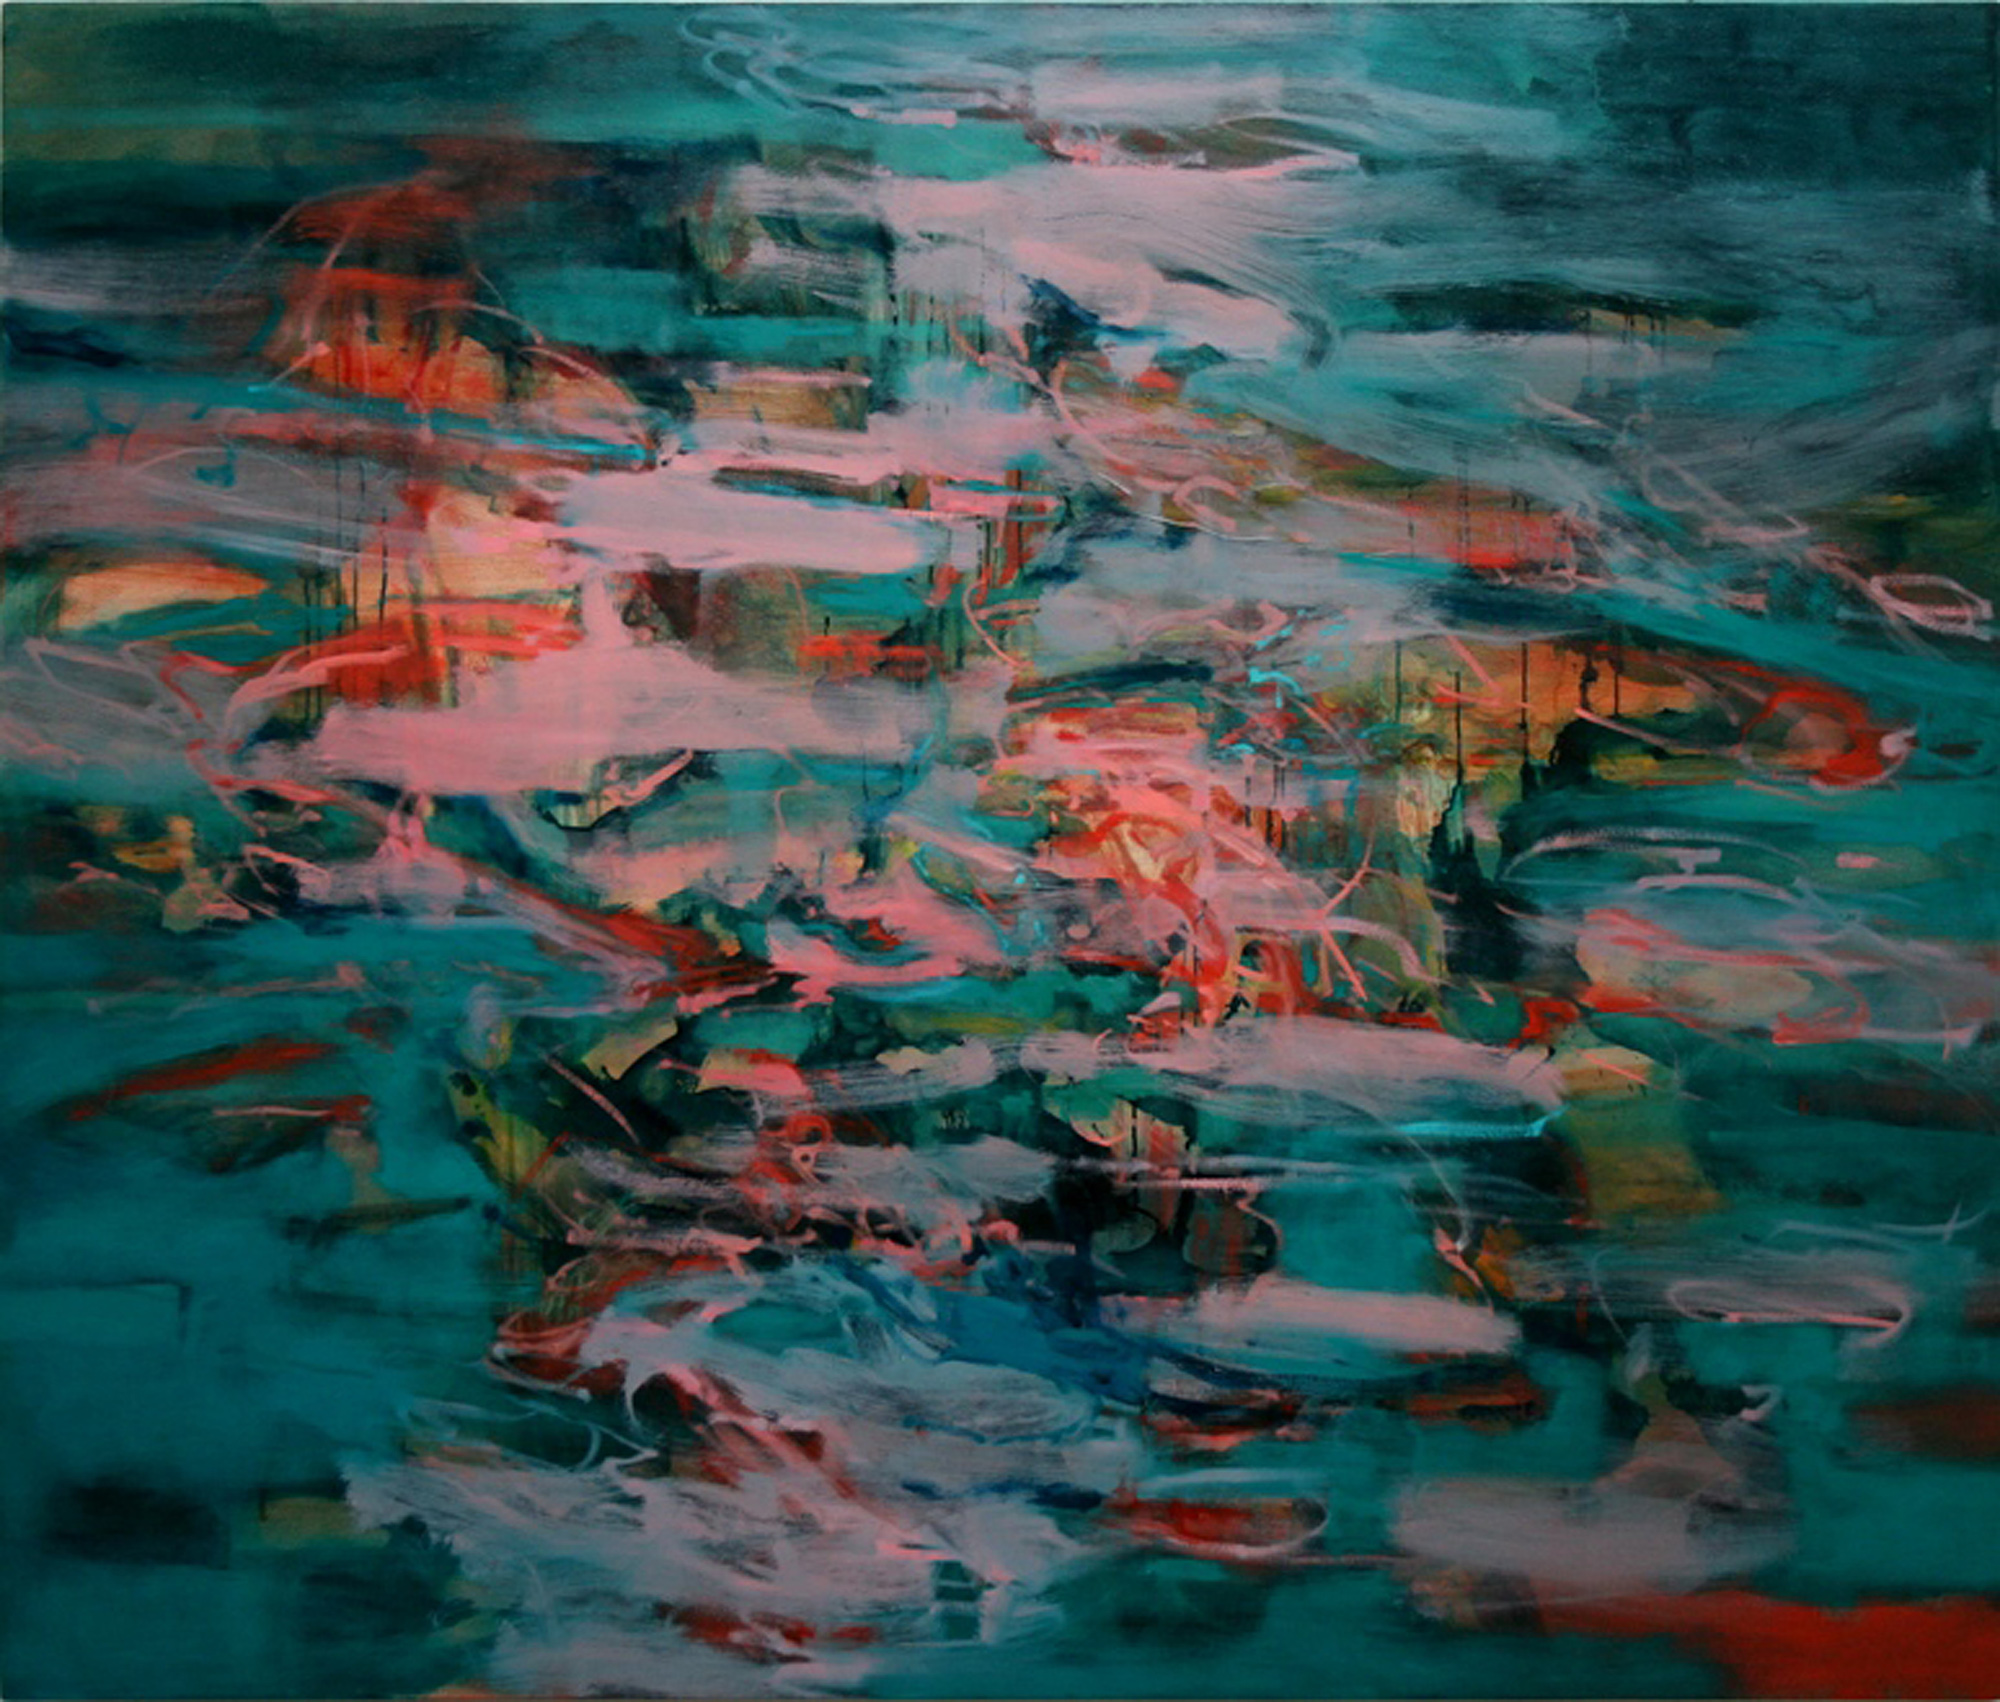 Untitled (pink)  2005  oil on canvas  141.5 x 167.5 cm